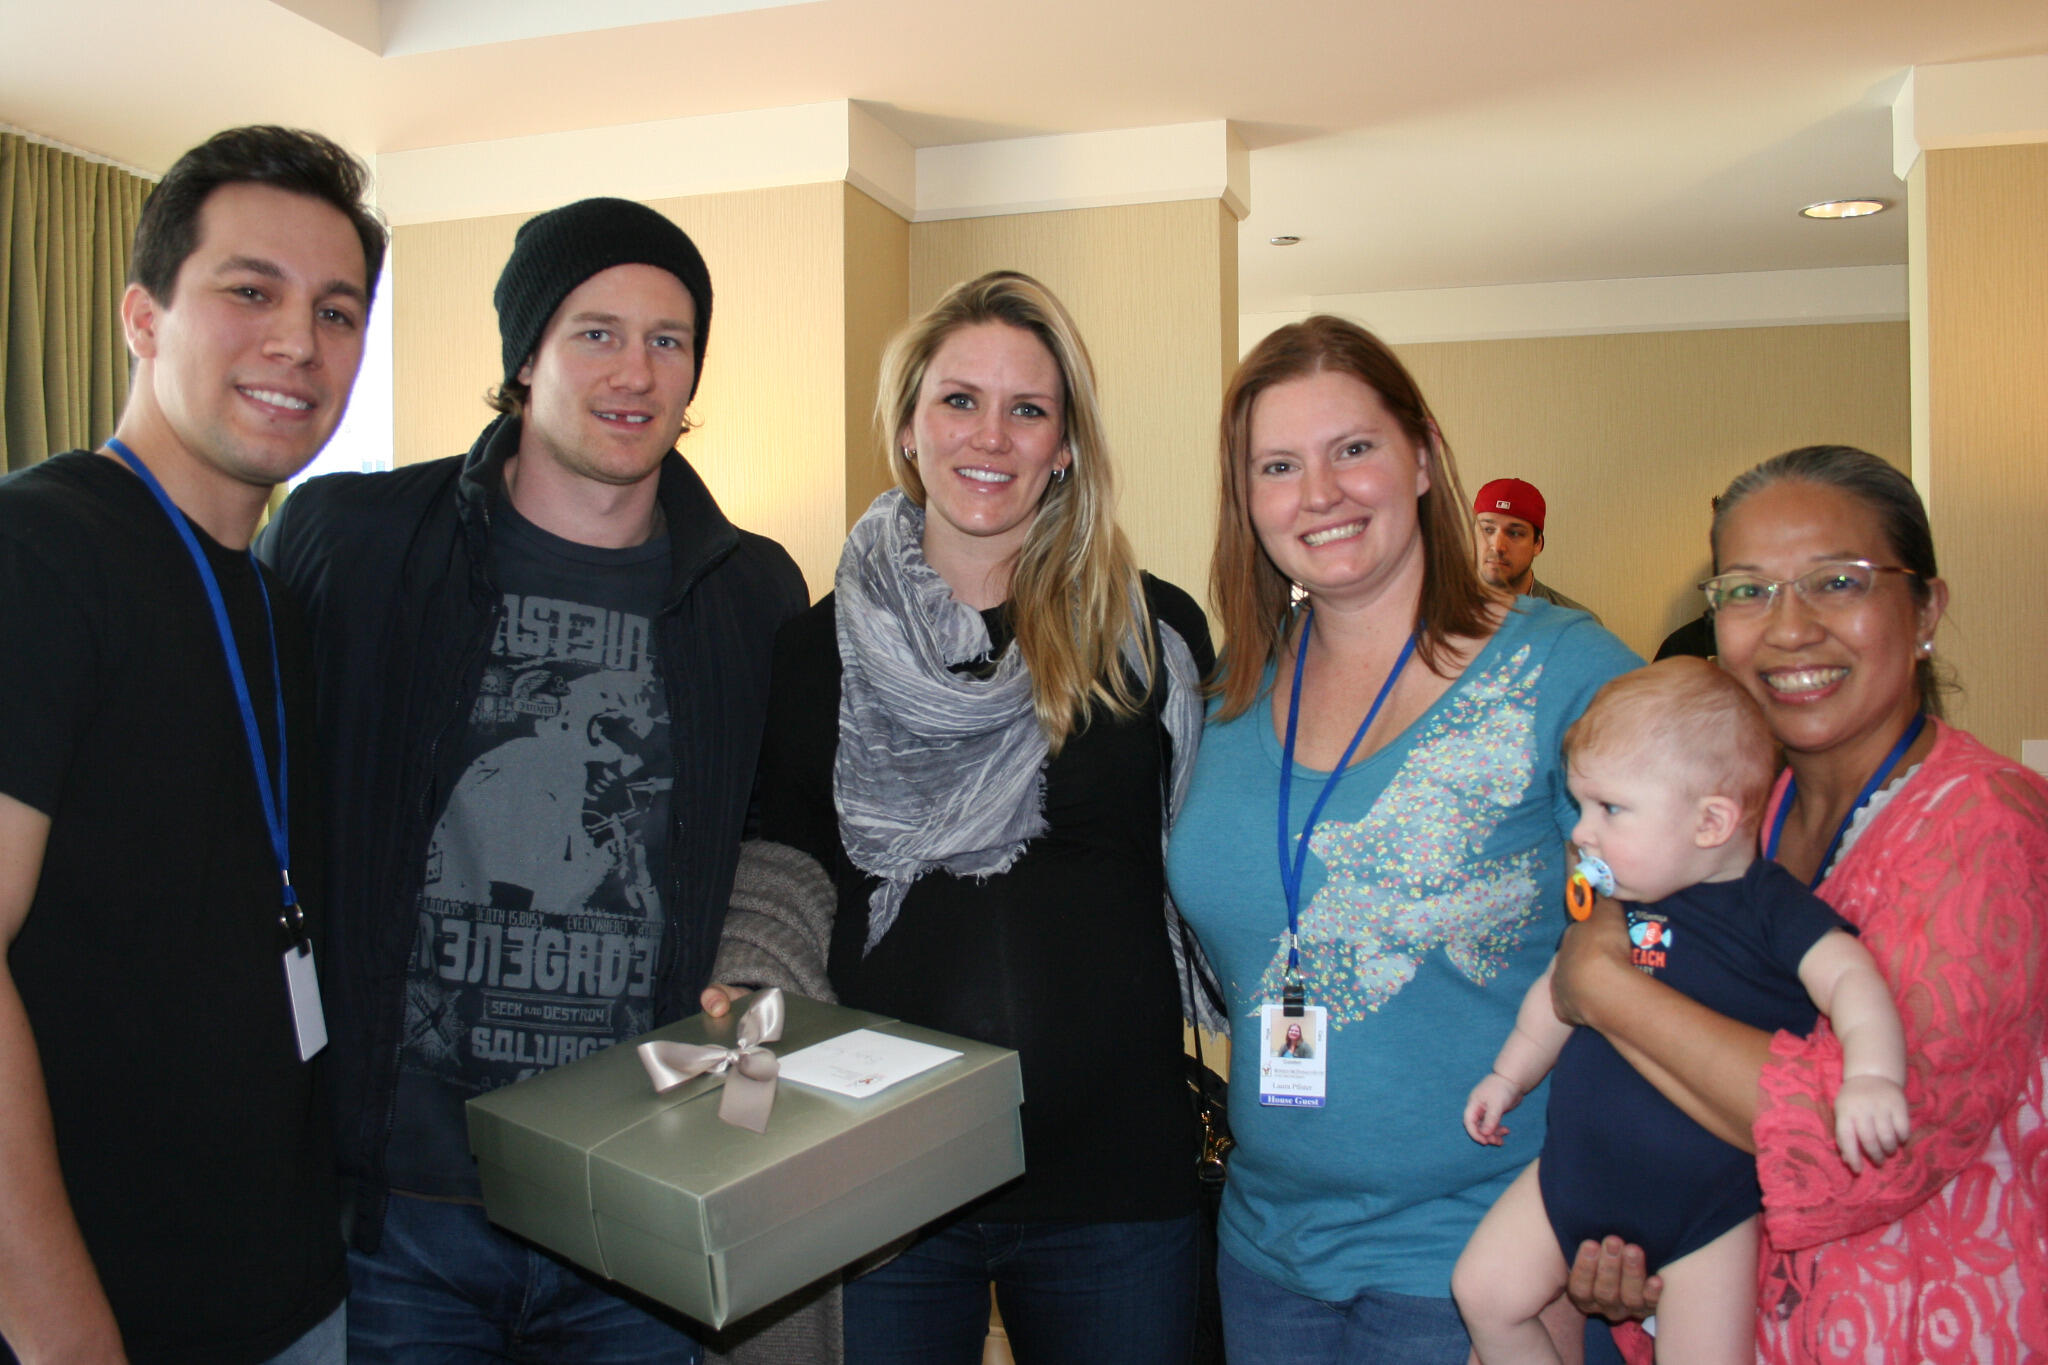 RT @RMHCCNI: @DuncanKeith Thank you so much for coming by today! Andrew & his family are so thankful for your support! #blackhawks http://t.co/RfVx2I8p5I